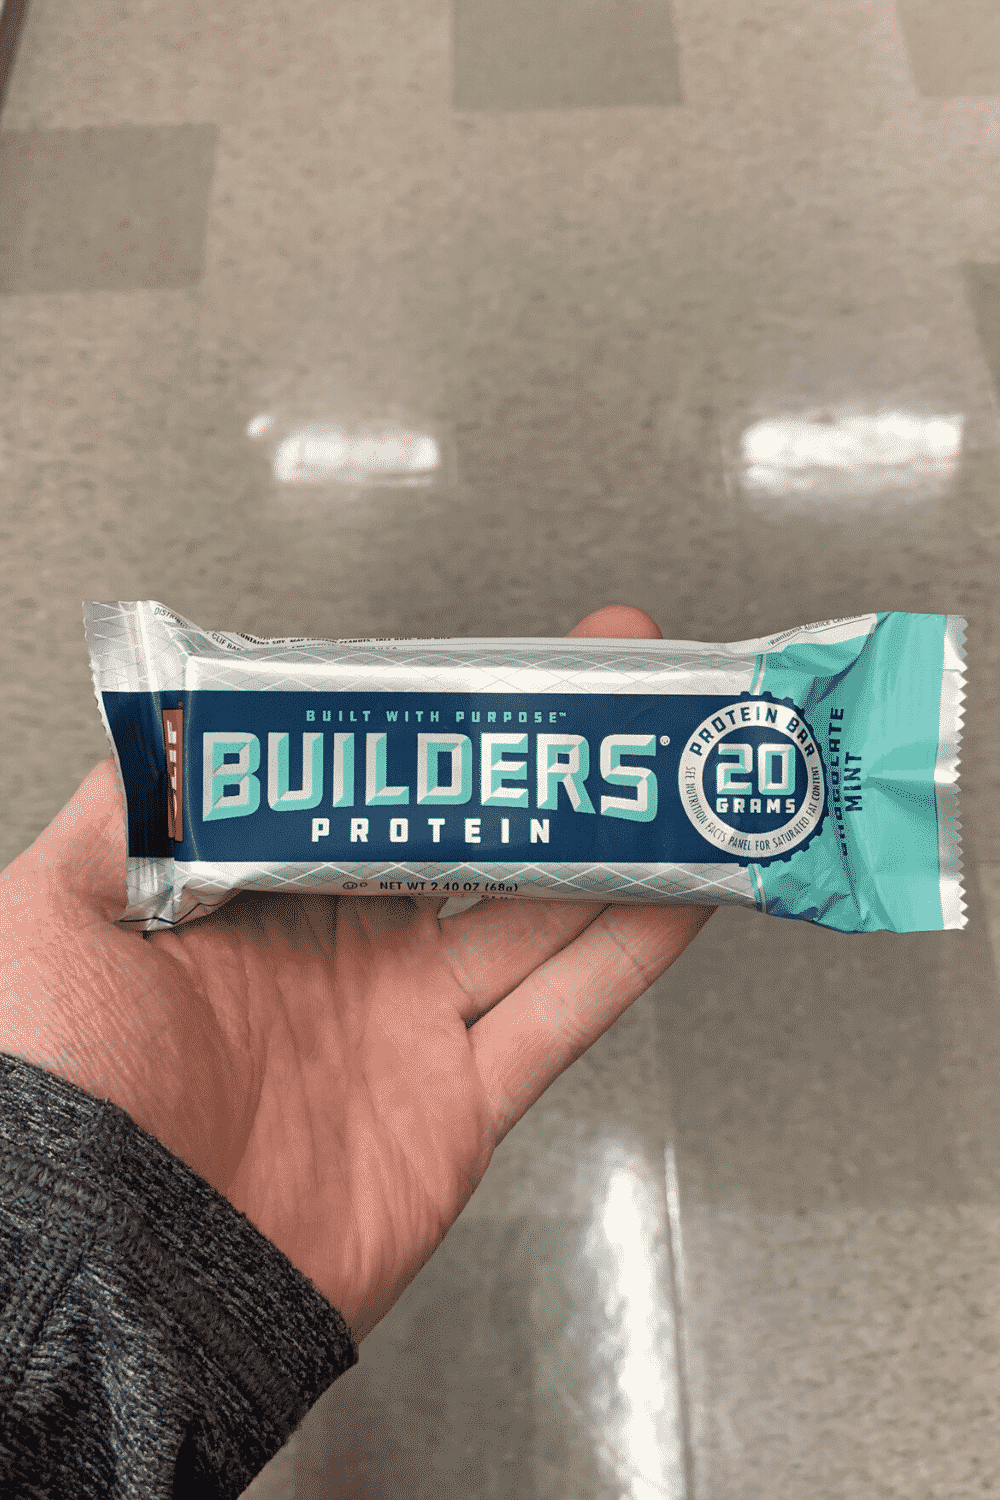 A hand holding a wrapped Clif builders bar mint chocolate flavored.